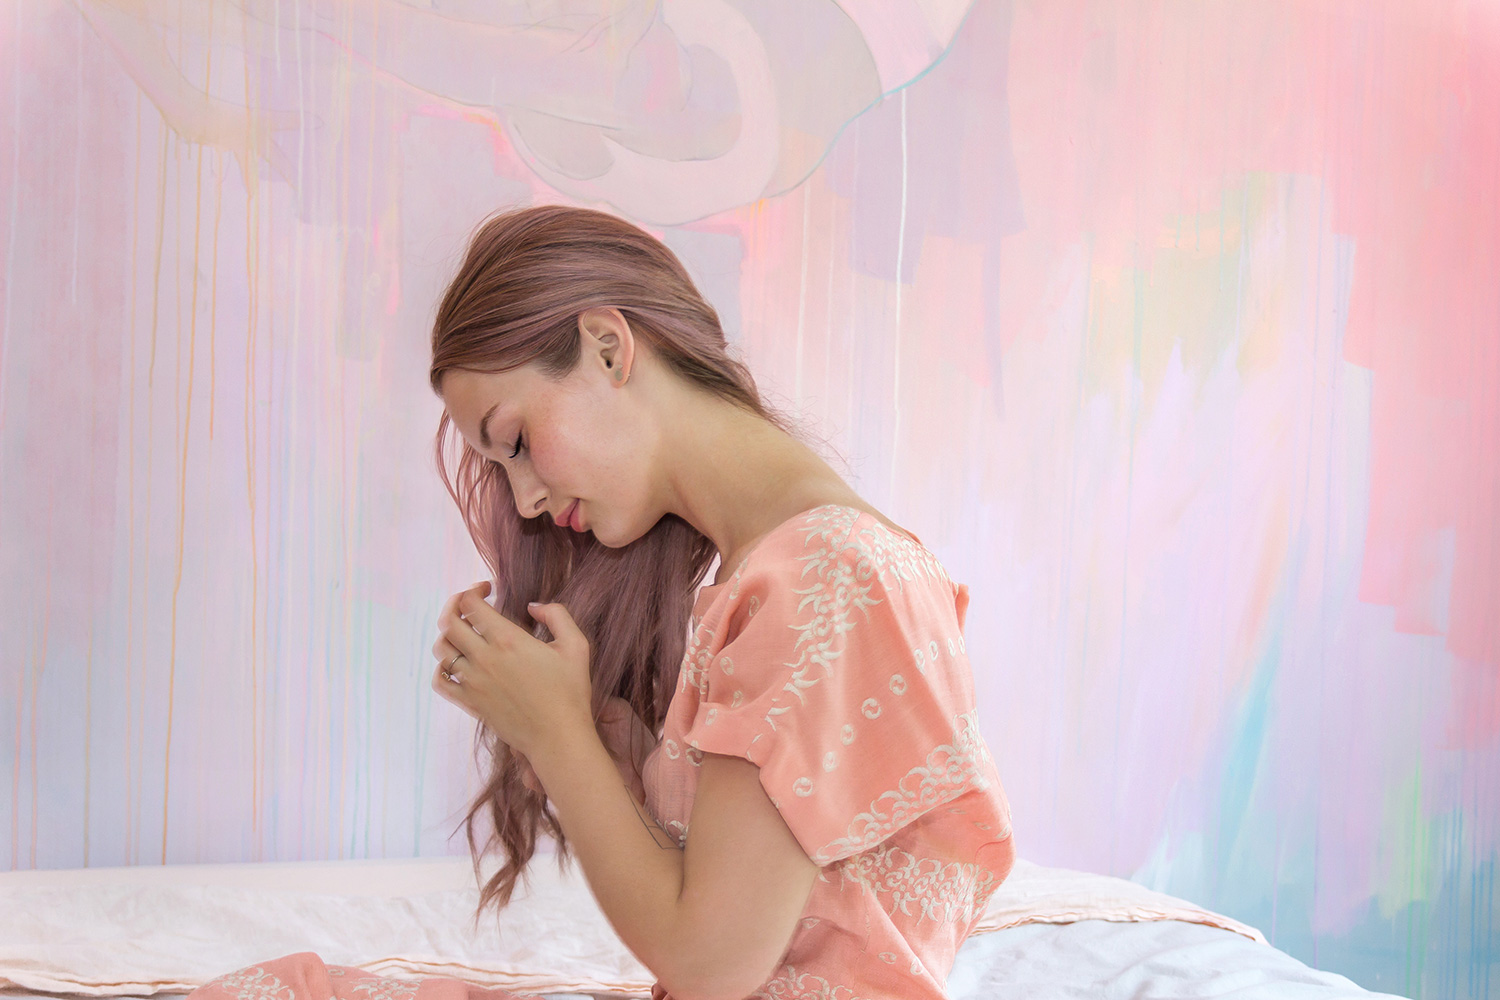 Model braids her pastel purple hair in front of an abstract mural, she wears a vintage peach dress.